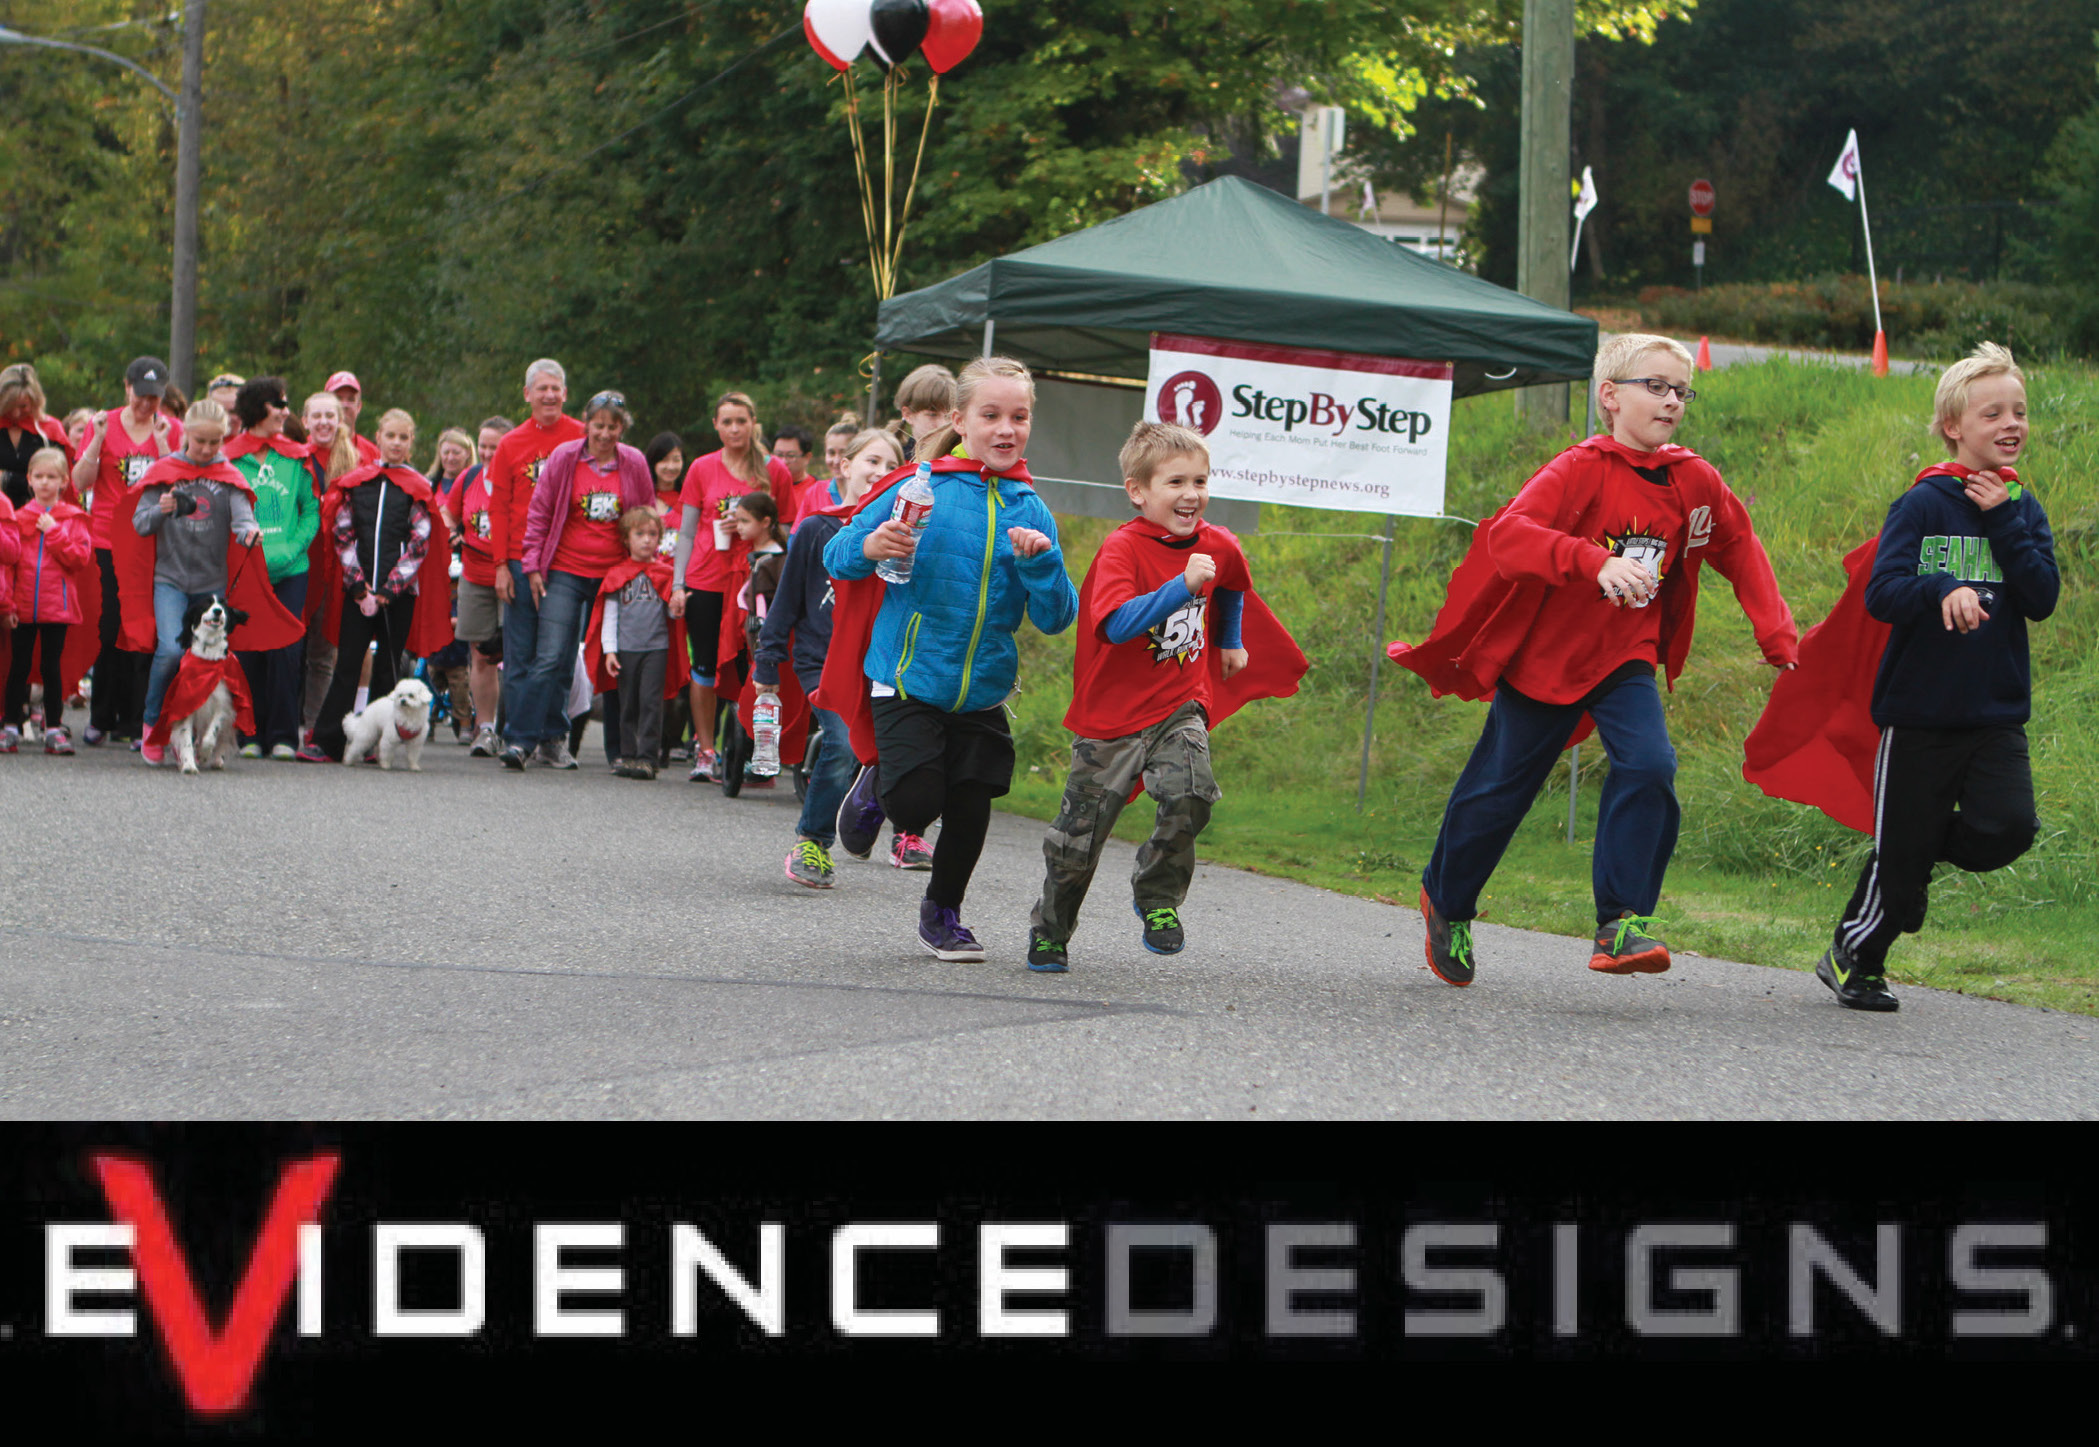 OCTOBER - Jim Woolace and Evidence DesignsJim donated his graphic design skills to help us design the event t-shirt for this year's fundraising 5k Walk/Run. He also donated his time as a professional photographer to cover the event and took some fantastic photos!